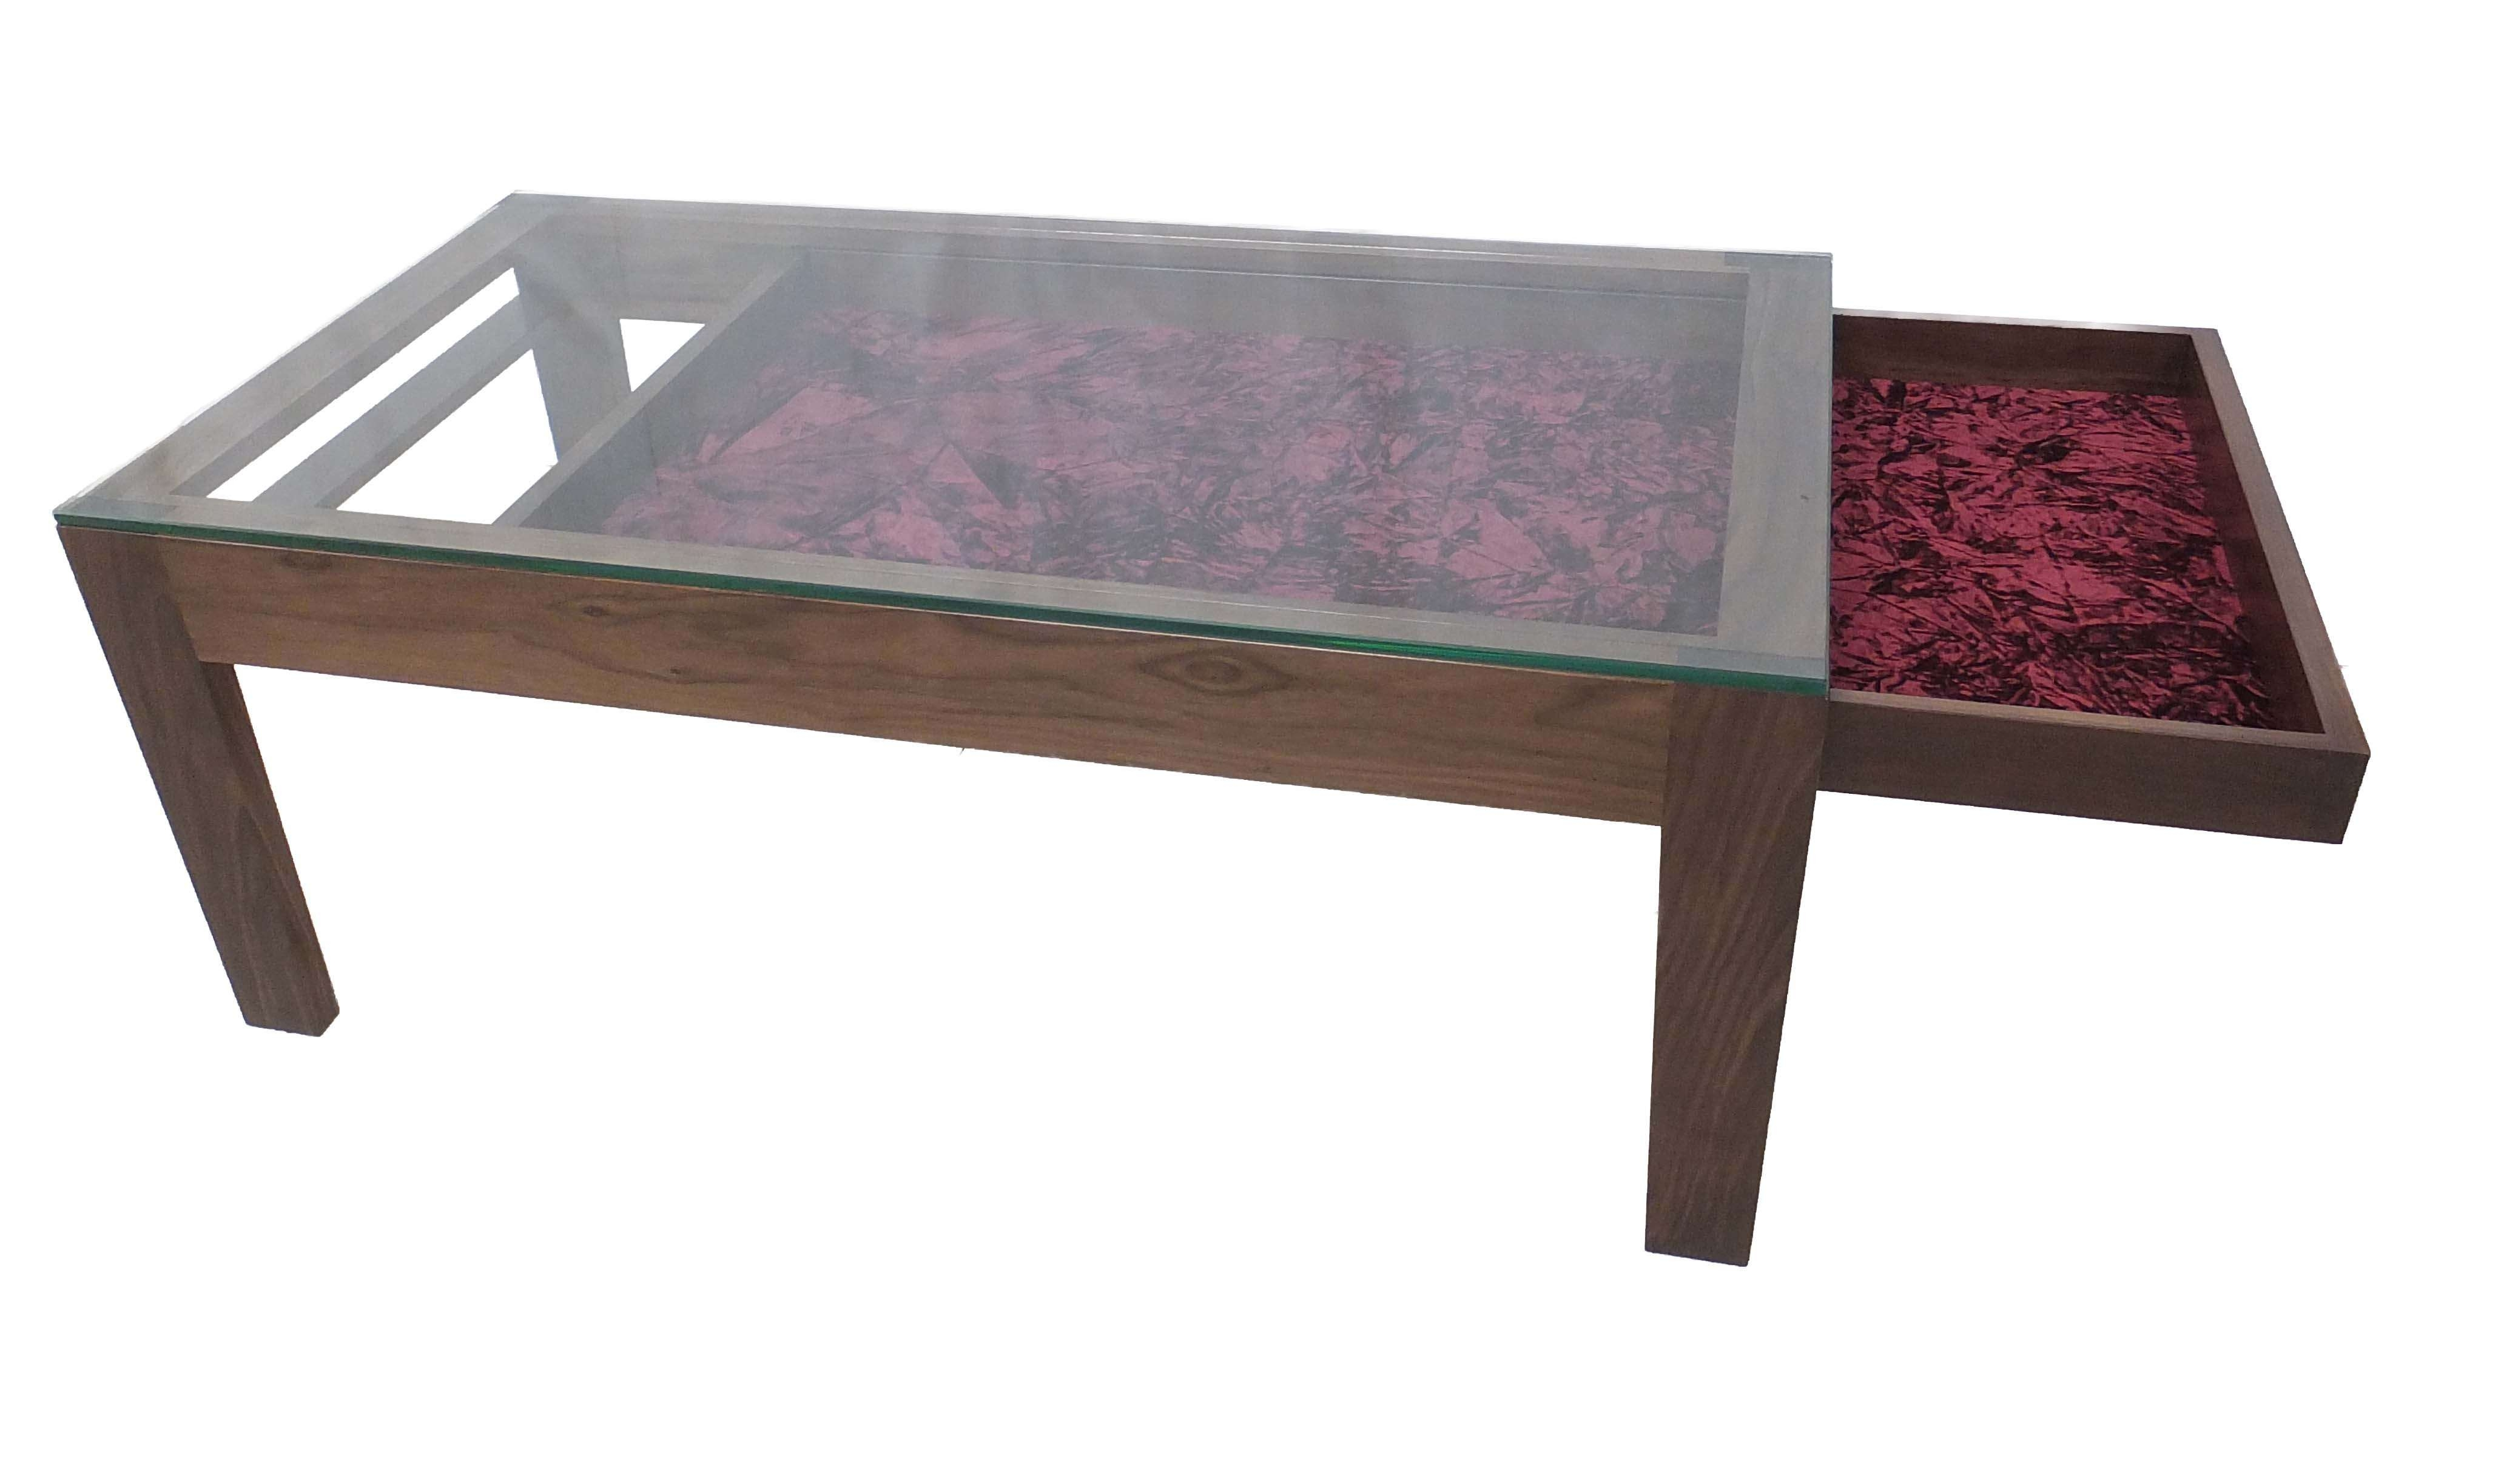 Fashionable Coffee Tables With Glass Top Display Drawer Intended For Glass Display Coffee Table Uk Made From Solid American Walnut With (View 16 of 20)